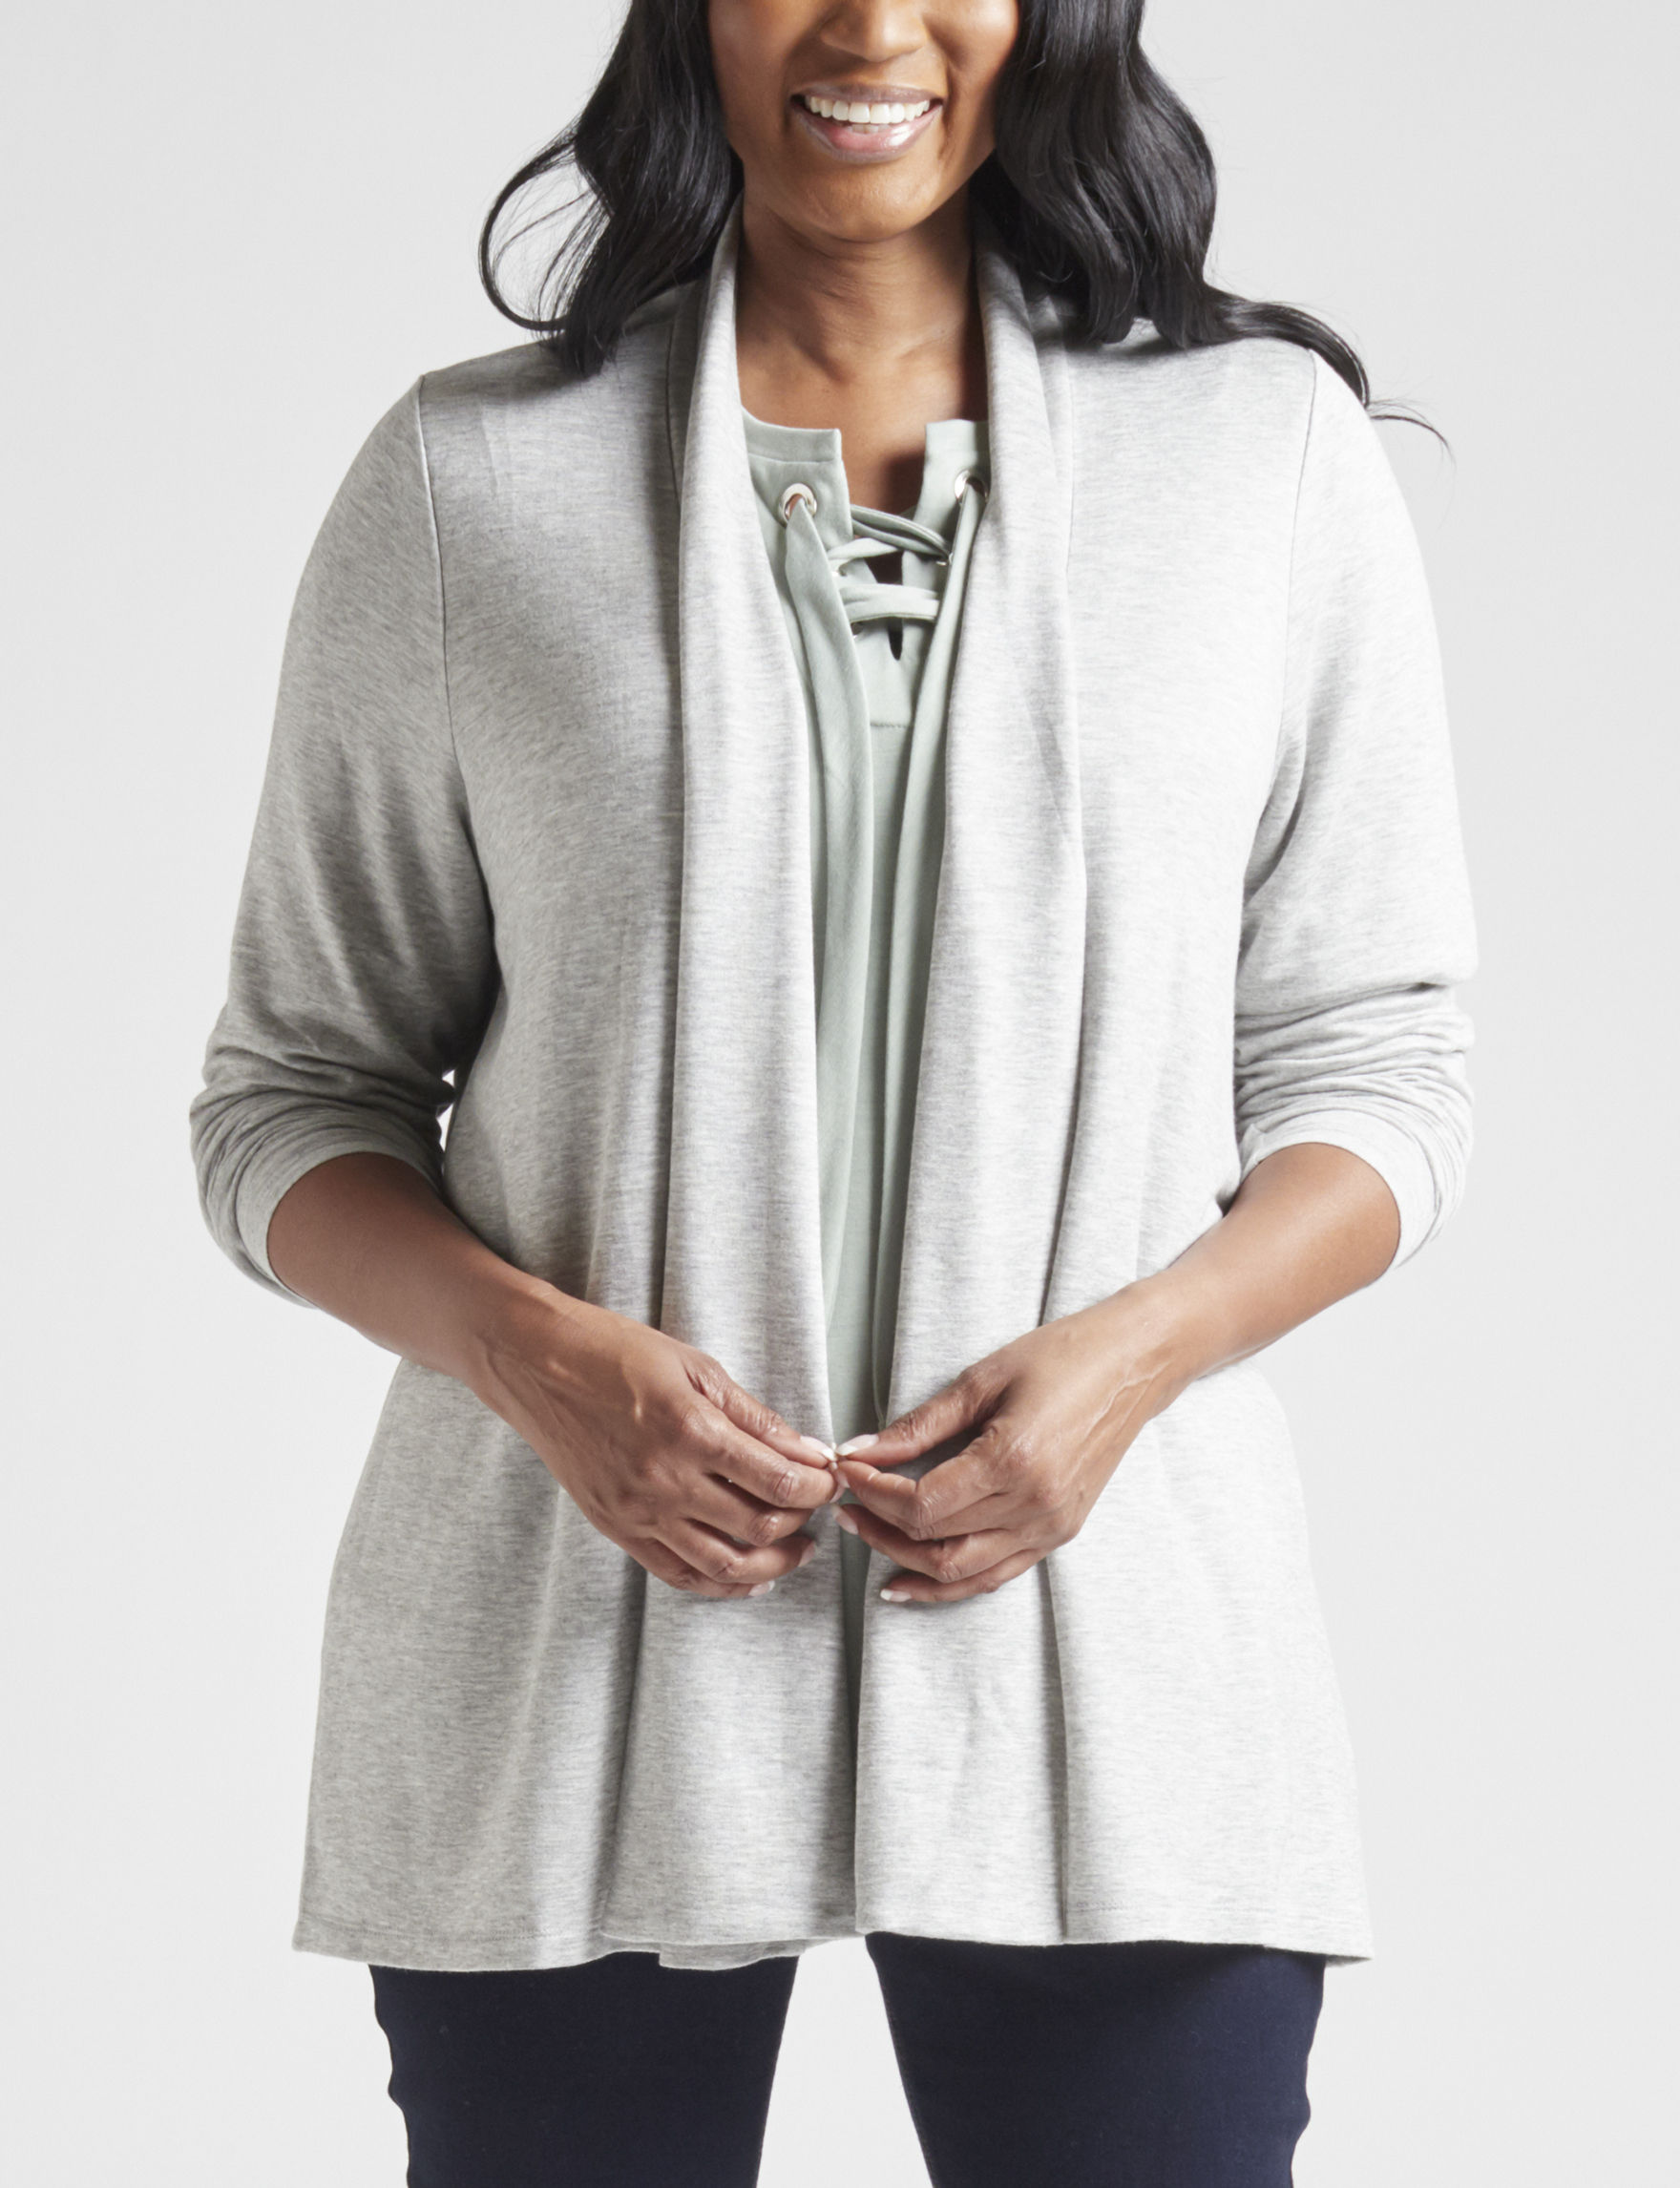 Signature Studio Grey Cardigans